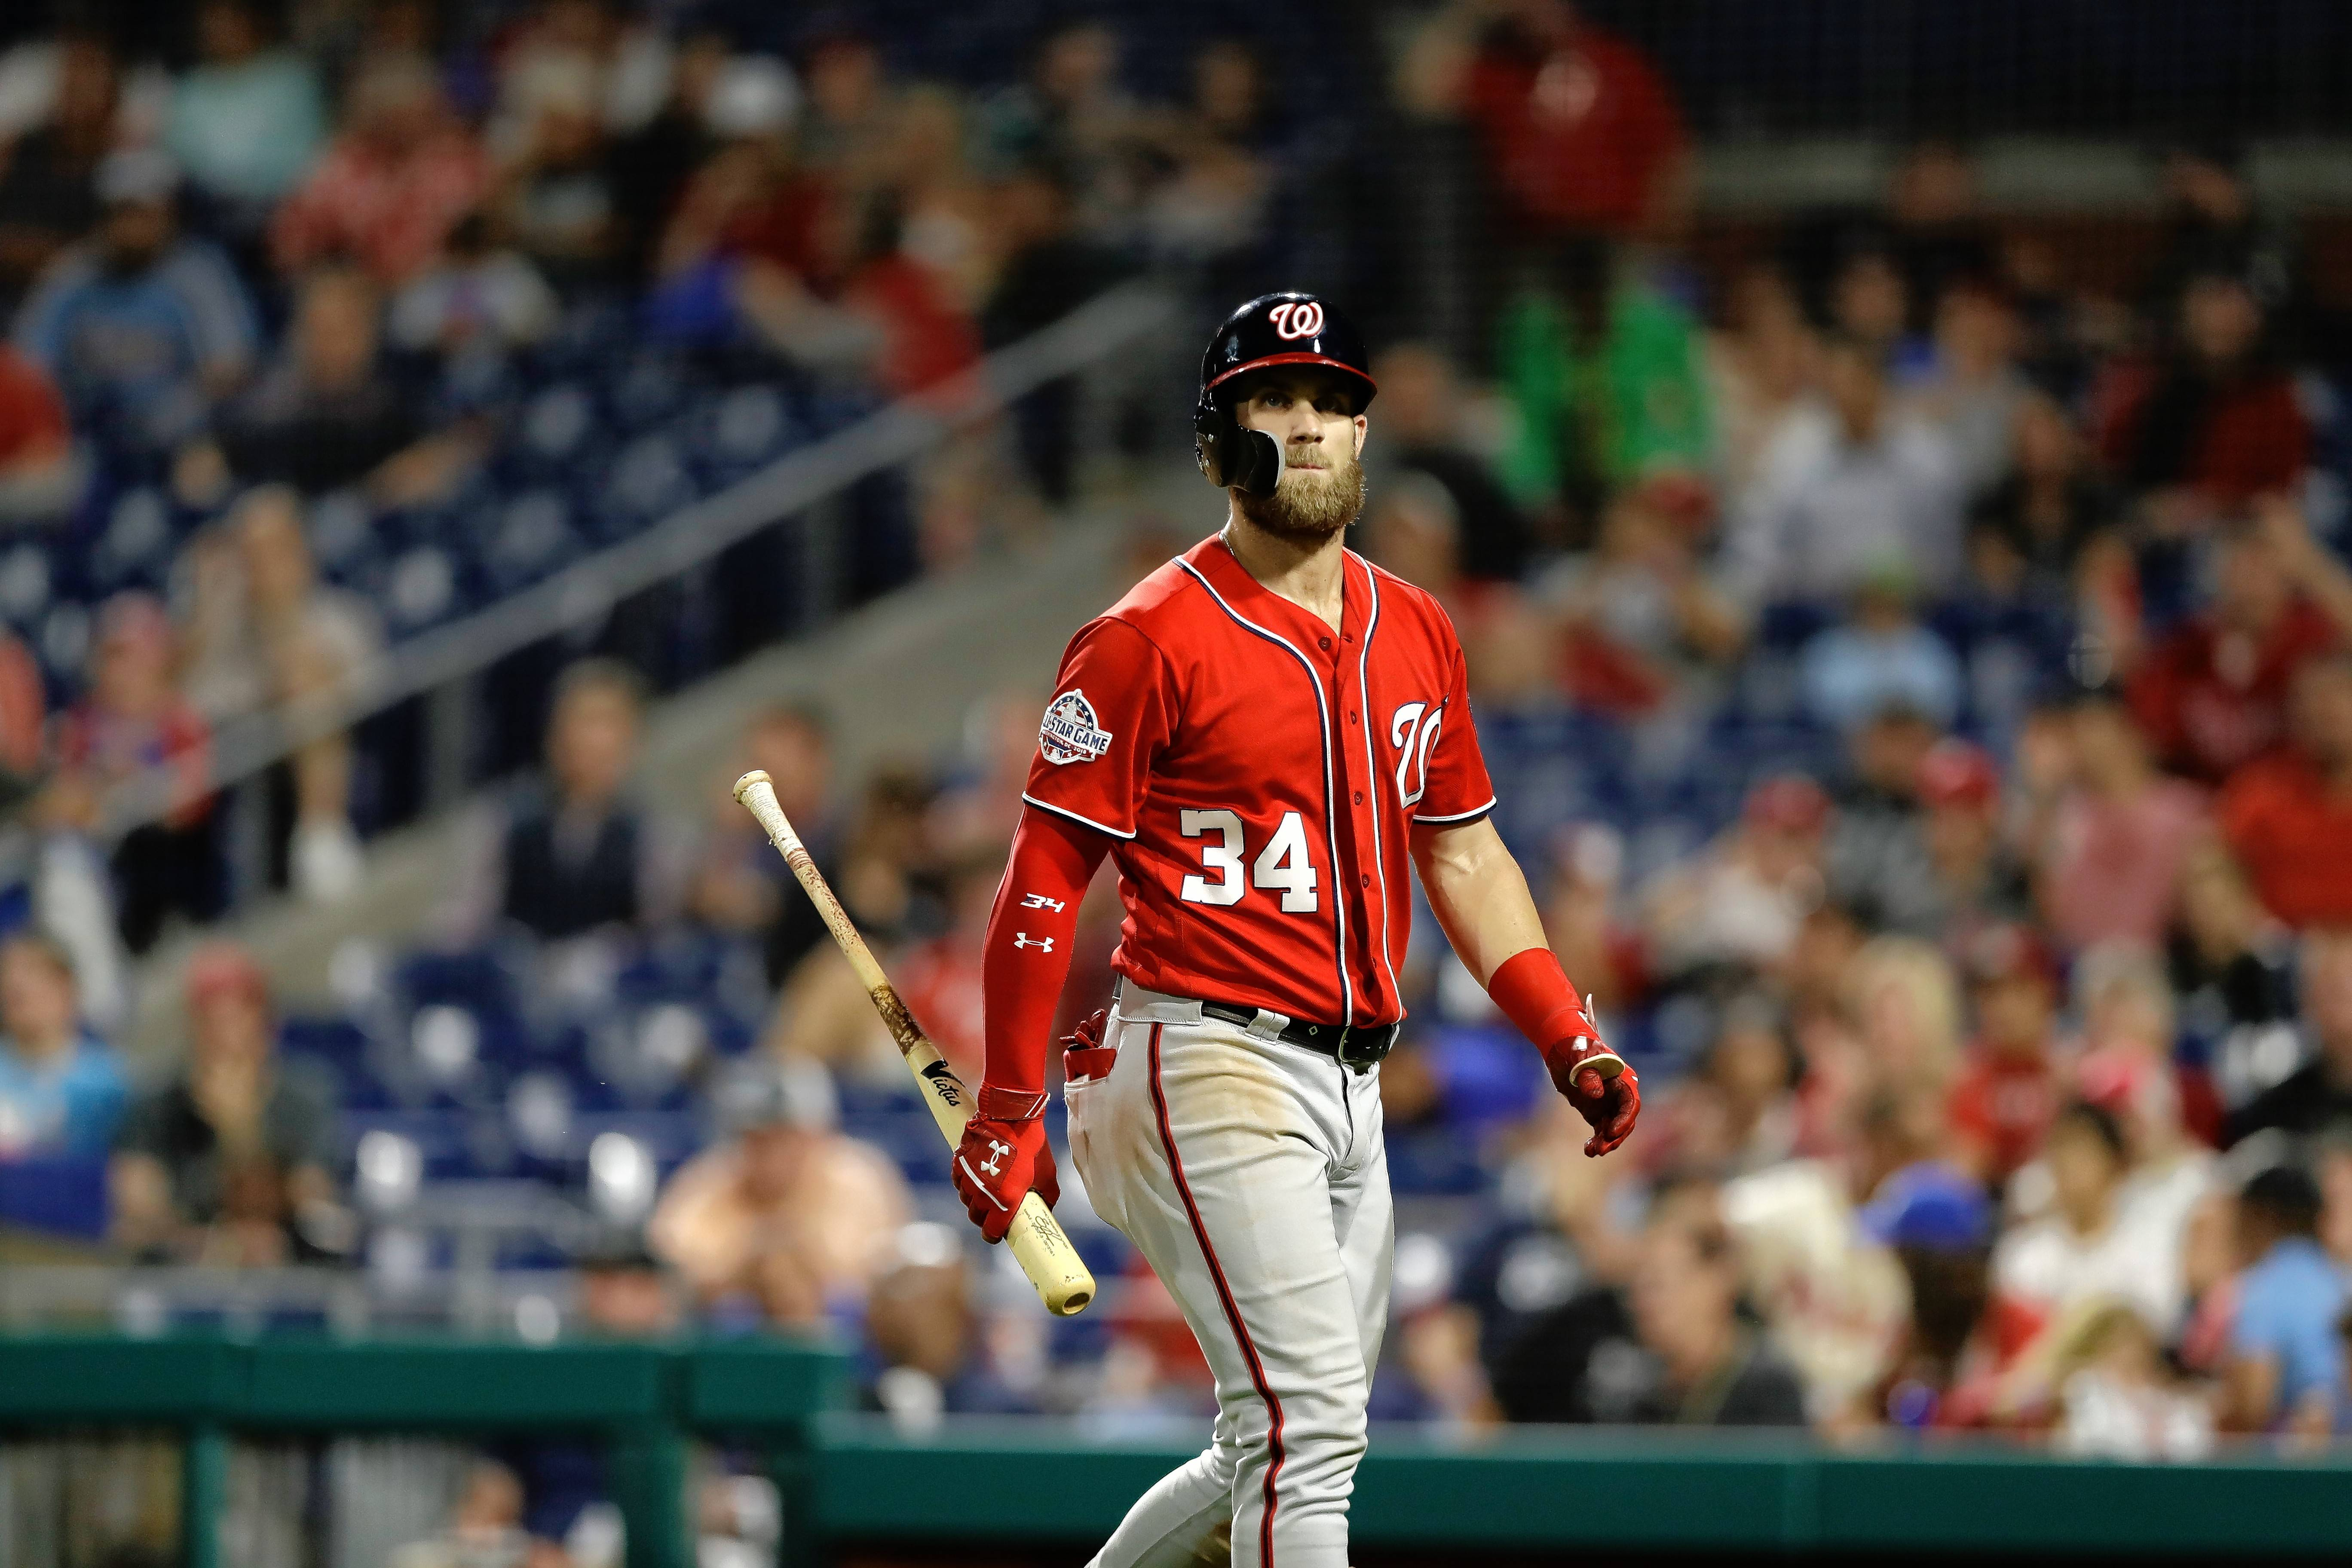 It seemed impossible a few months ago that the White Sox would still be in a position to possibly land free-agent Bryce Harper, but here we are.